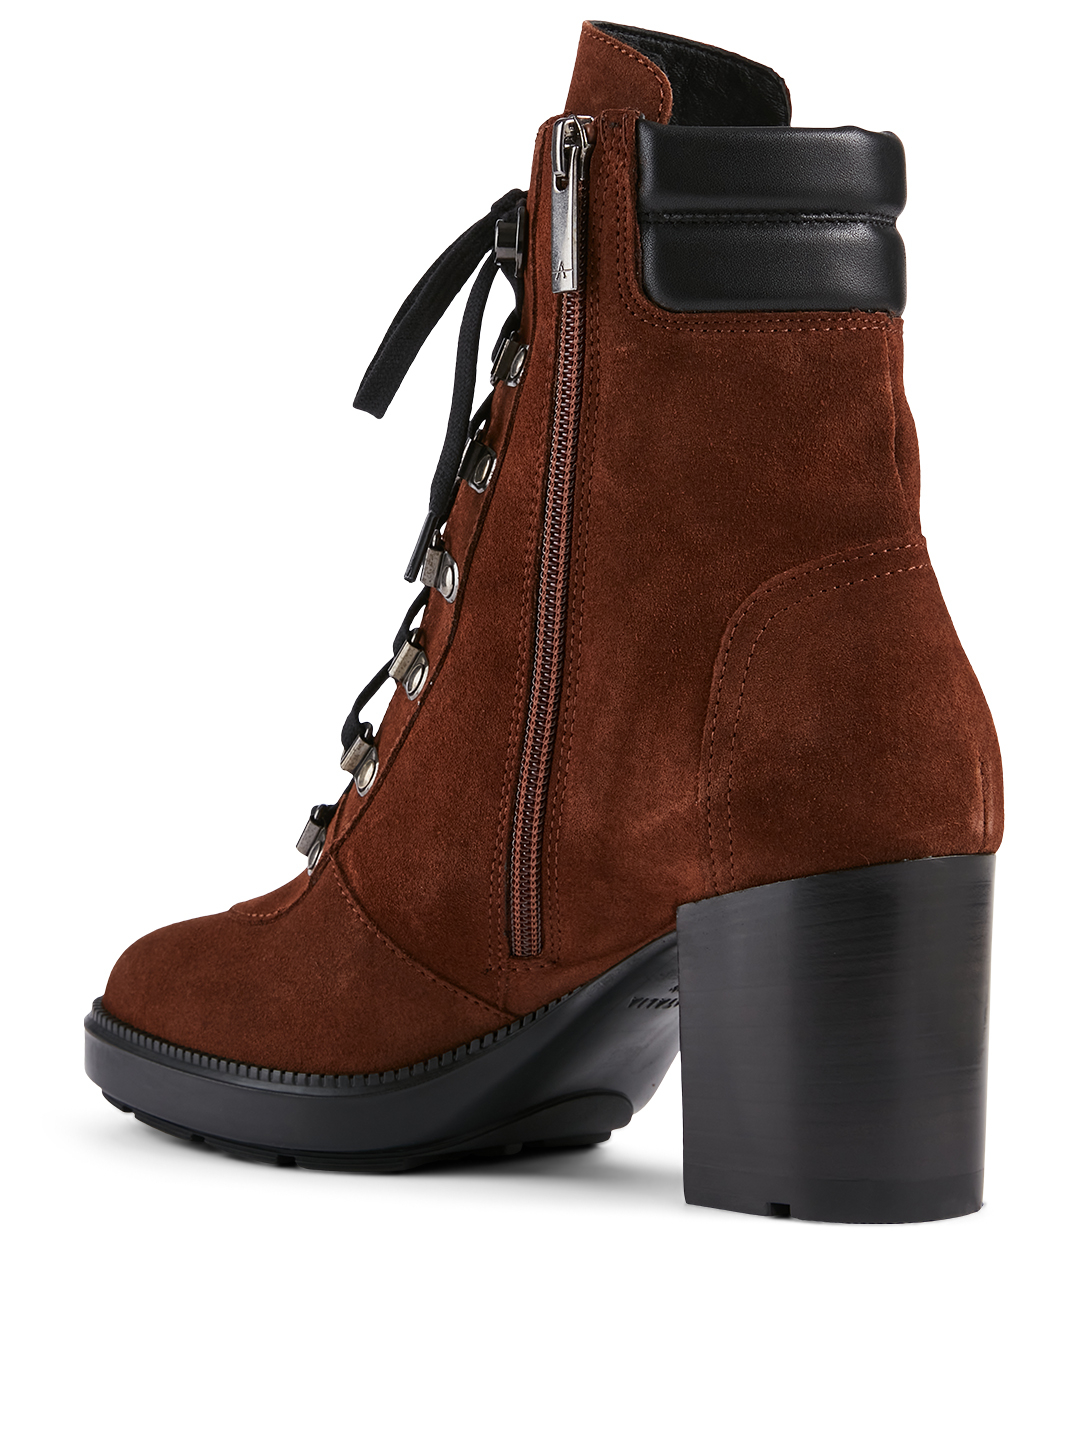 AQUATALIA Iriana Suede Heeled Lace-Up Ankle Boots Women's Brown